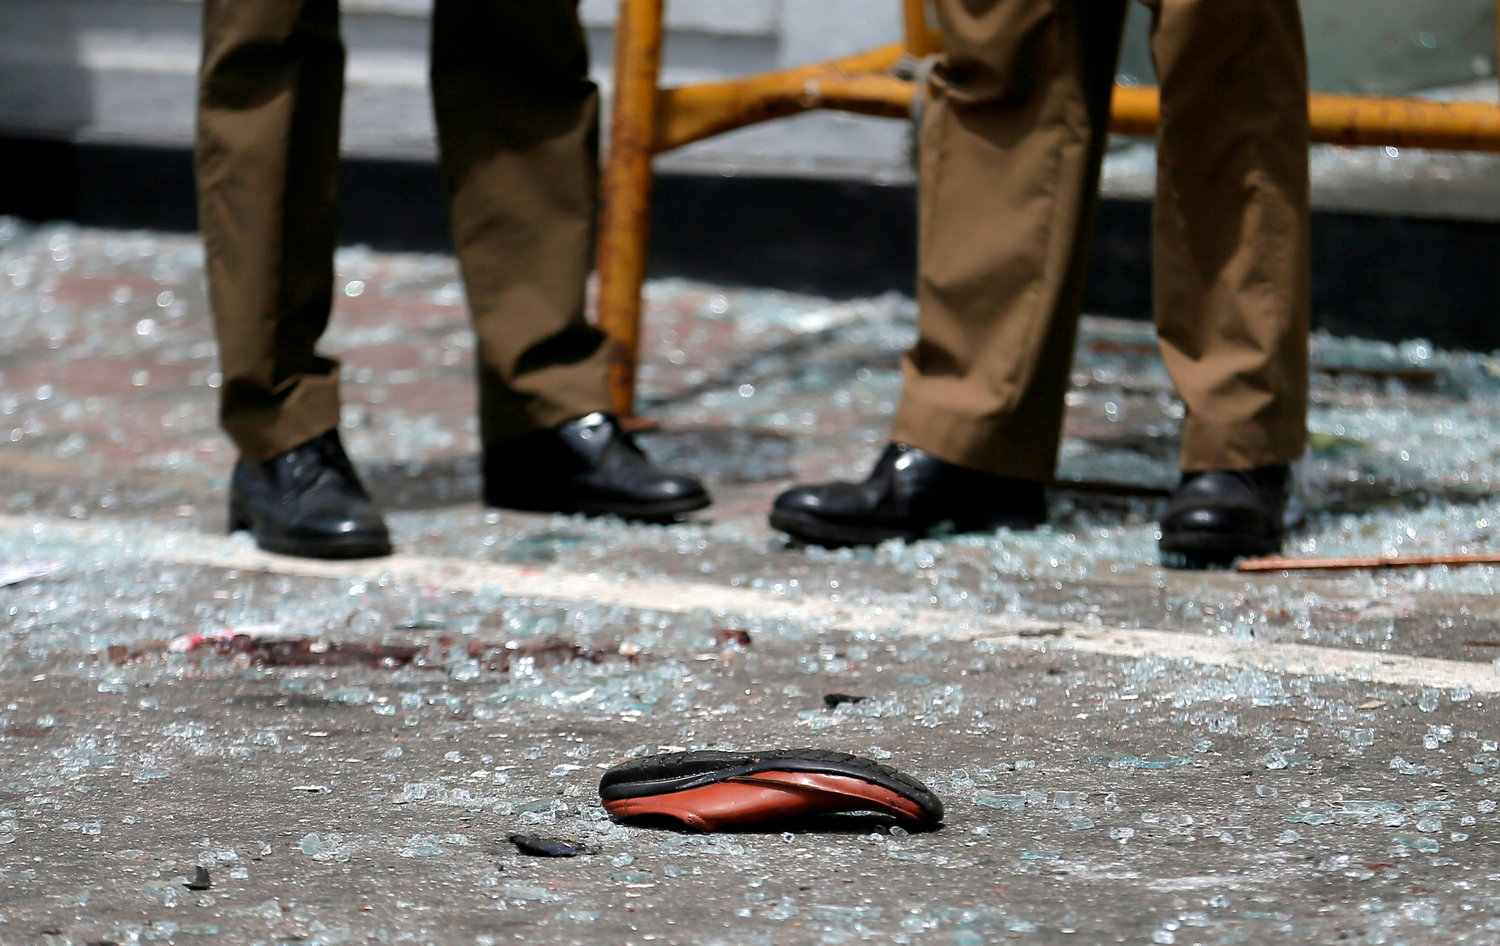 The shoe of a victim is seen in front of St. Anthony's Shrine in Colombo, Sri Lanka April 21, 2019. Sri Lankan officials reported 290 confirmed deaths from eight blasts at churches and hotels in three cities in apparently coordinated Easter attacks.